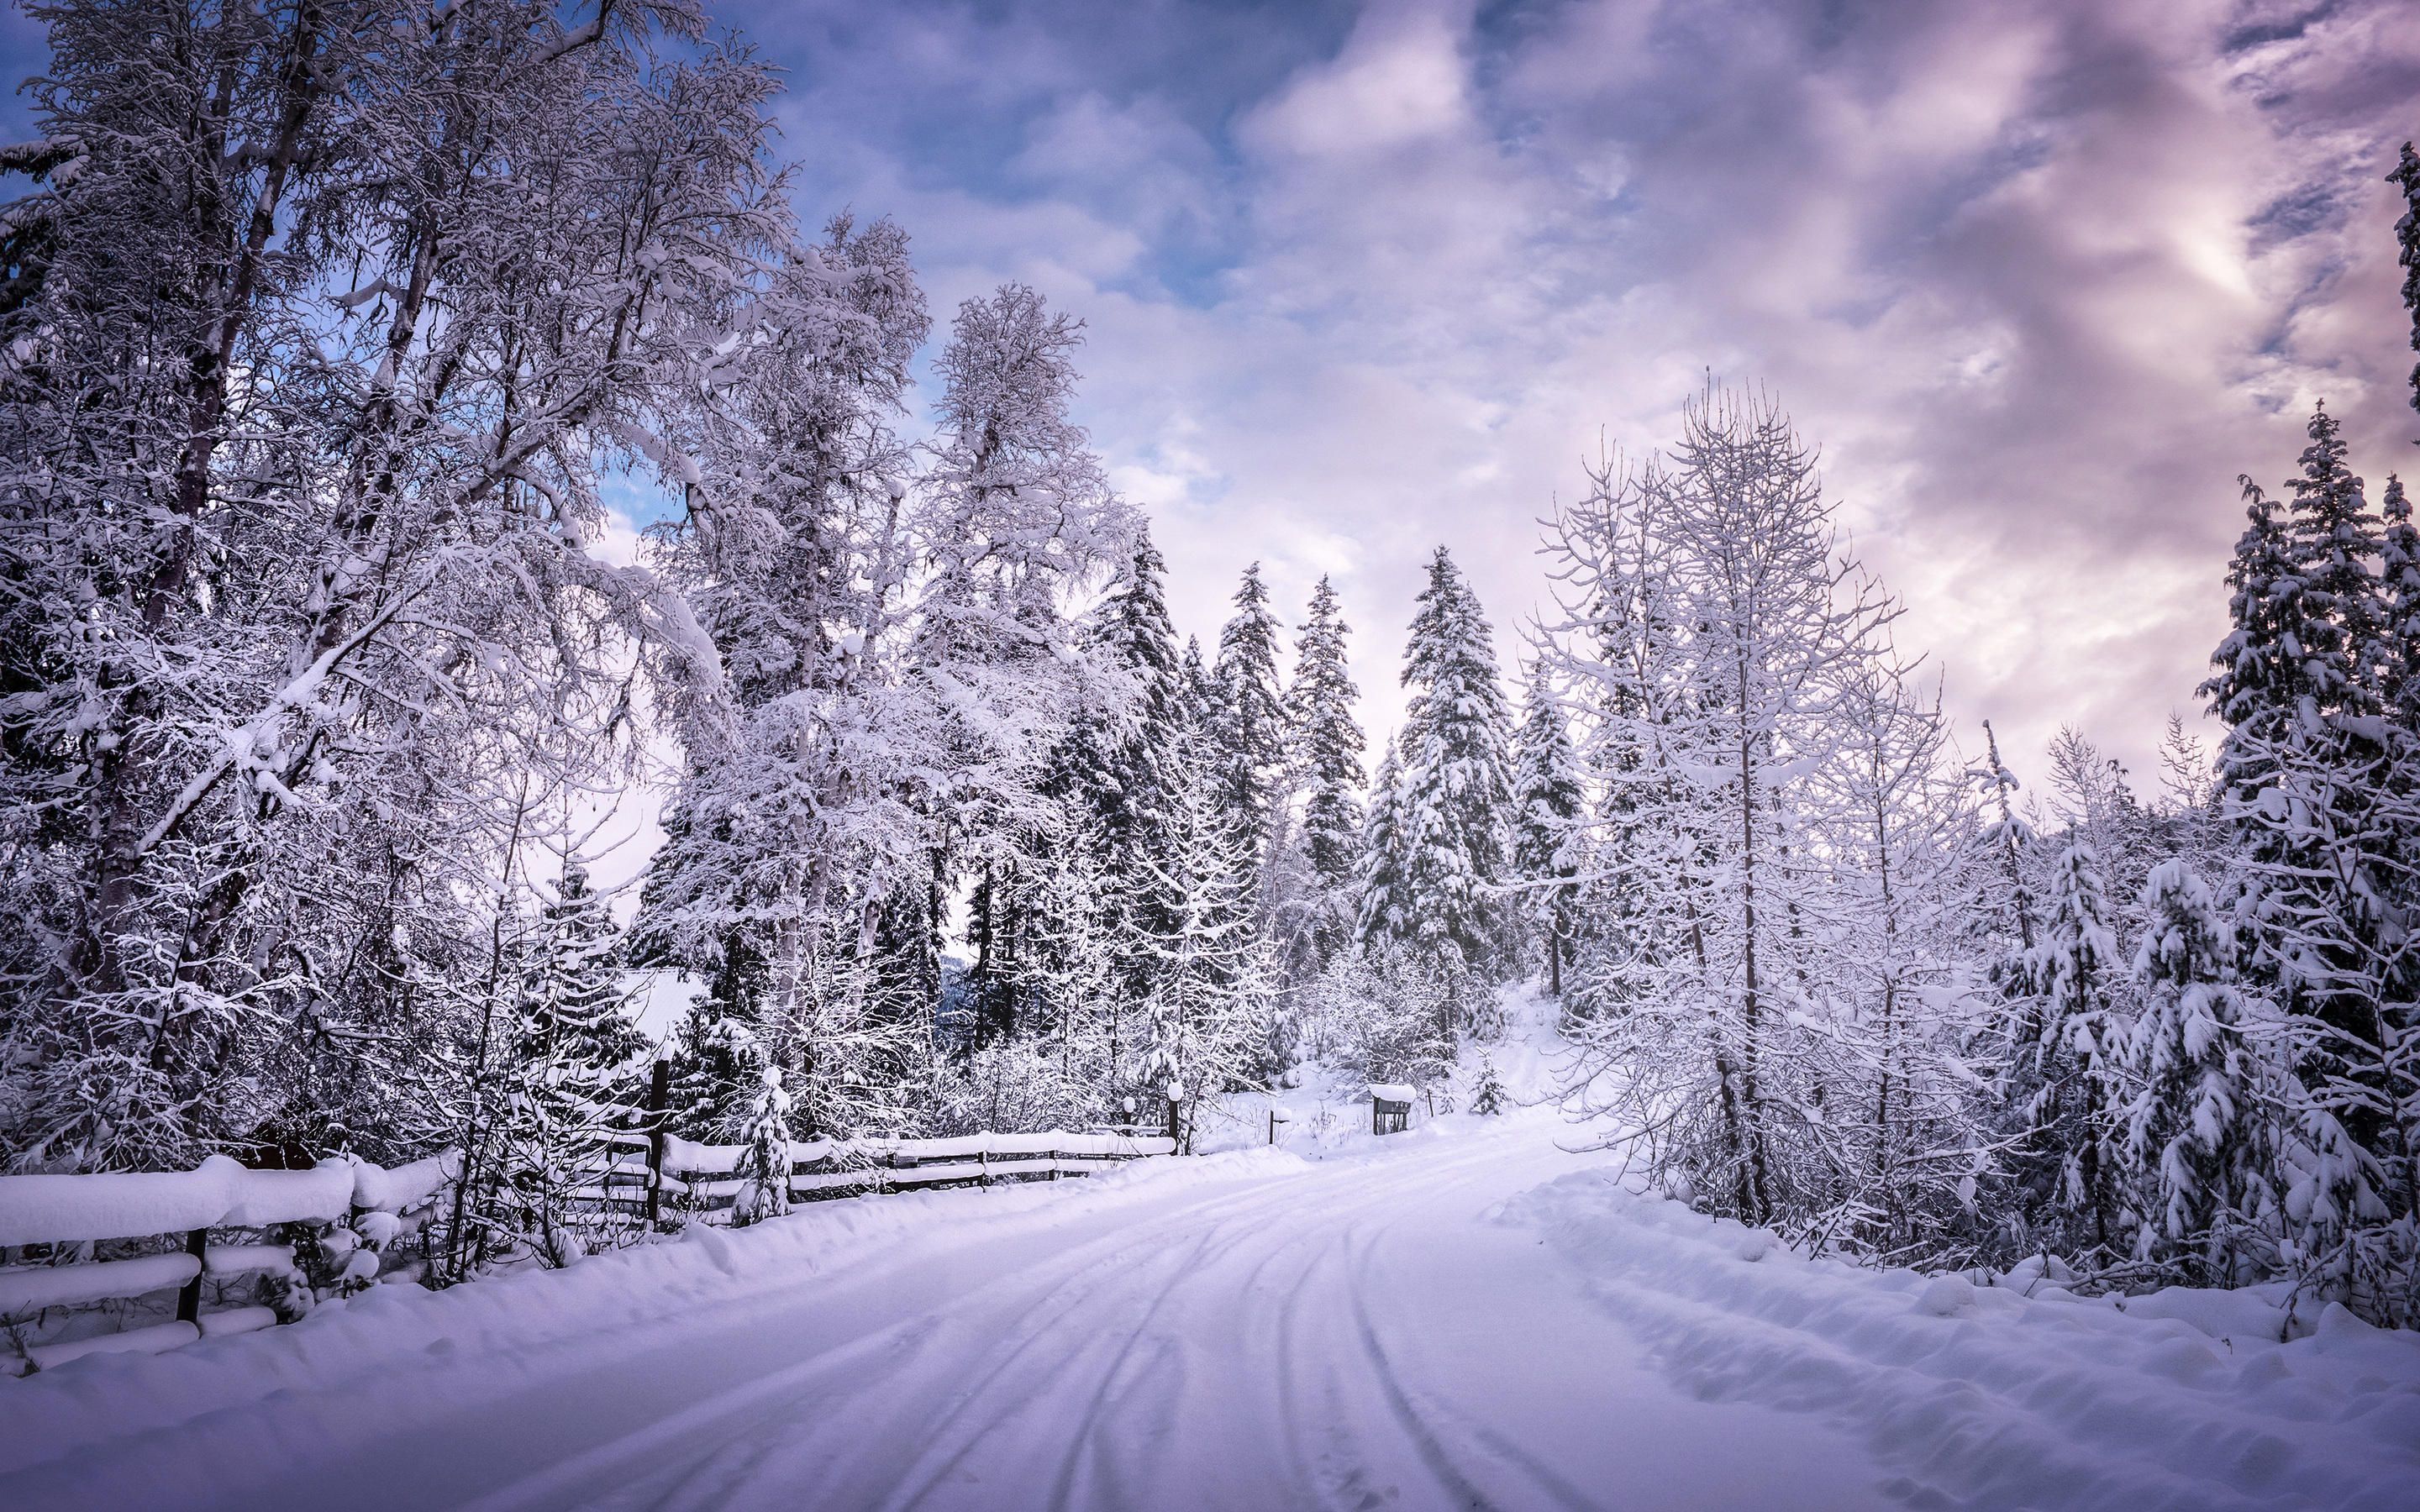 4k Iphone Wallpapers: 2880x1800 Winter Road Snow Trees White Macbook Pro Retina